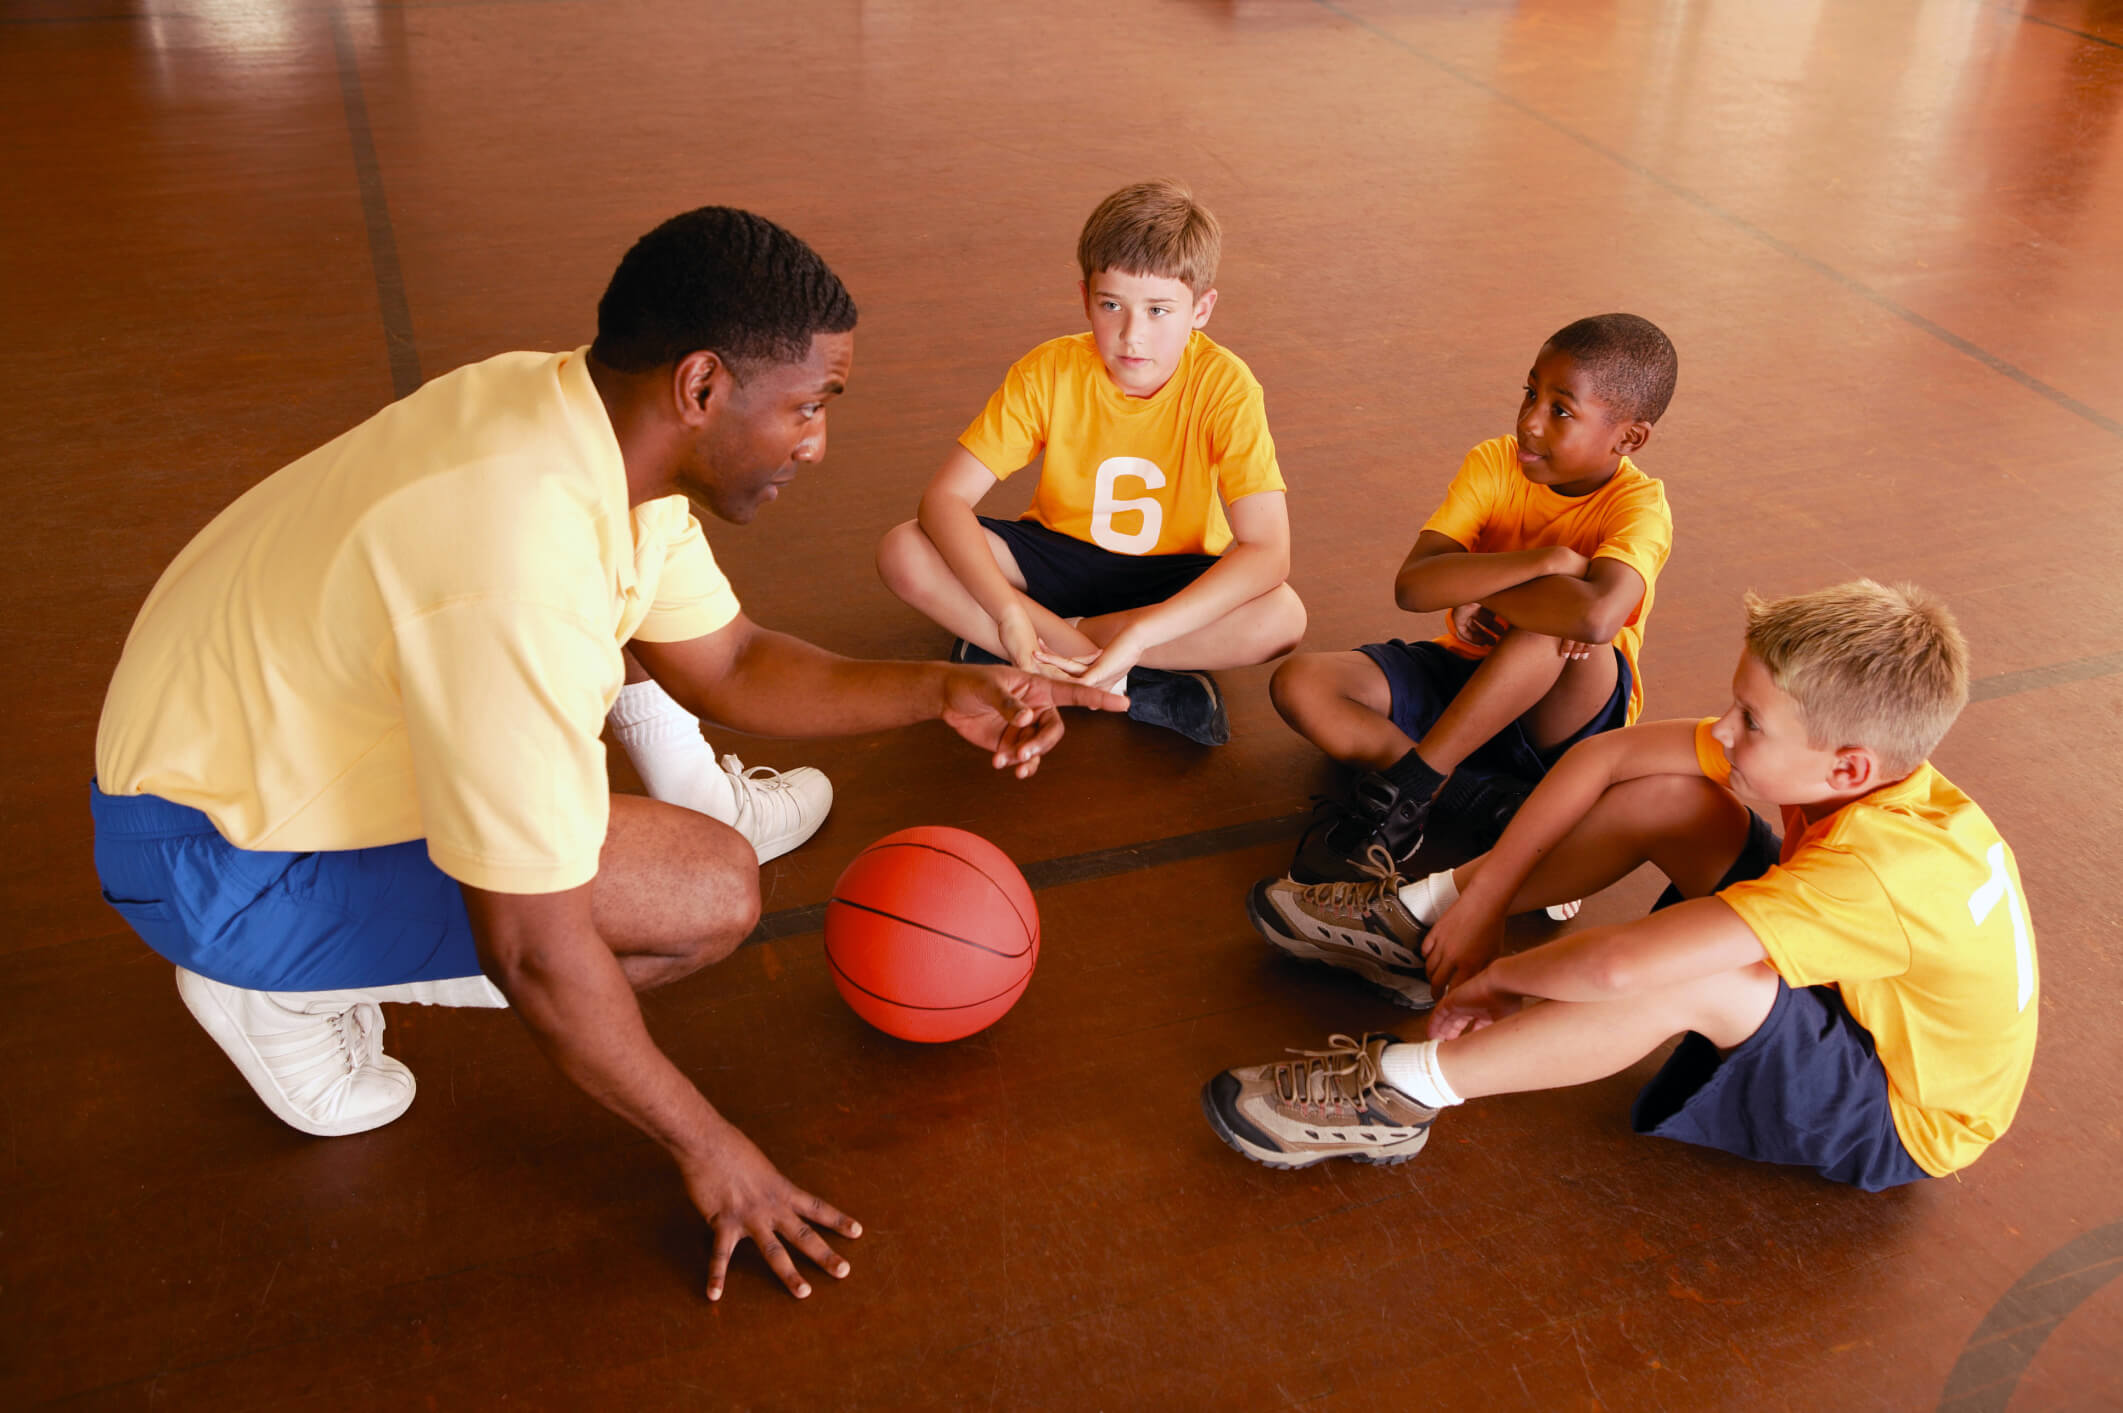 Guide on Coaching youth Basketball